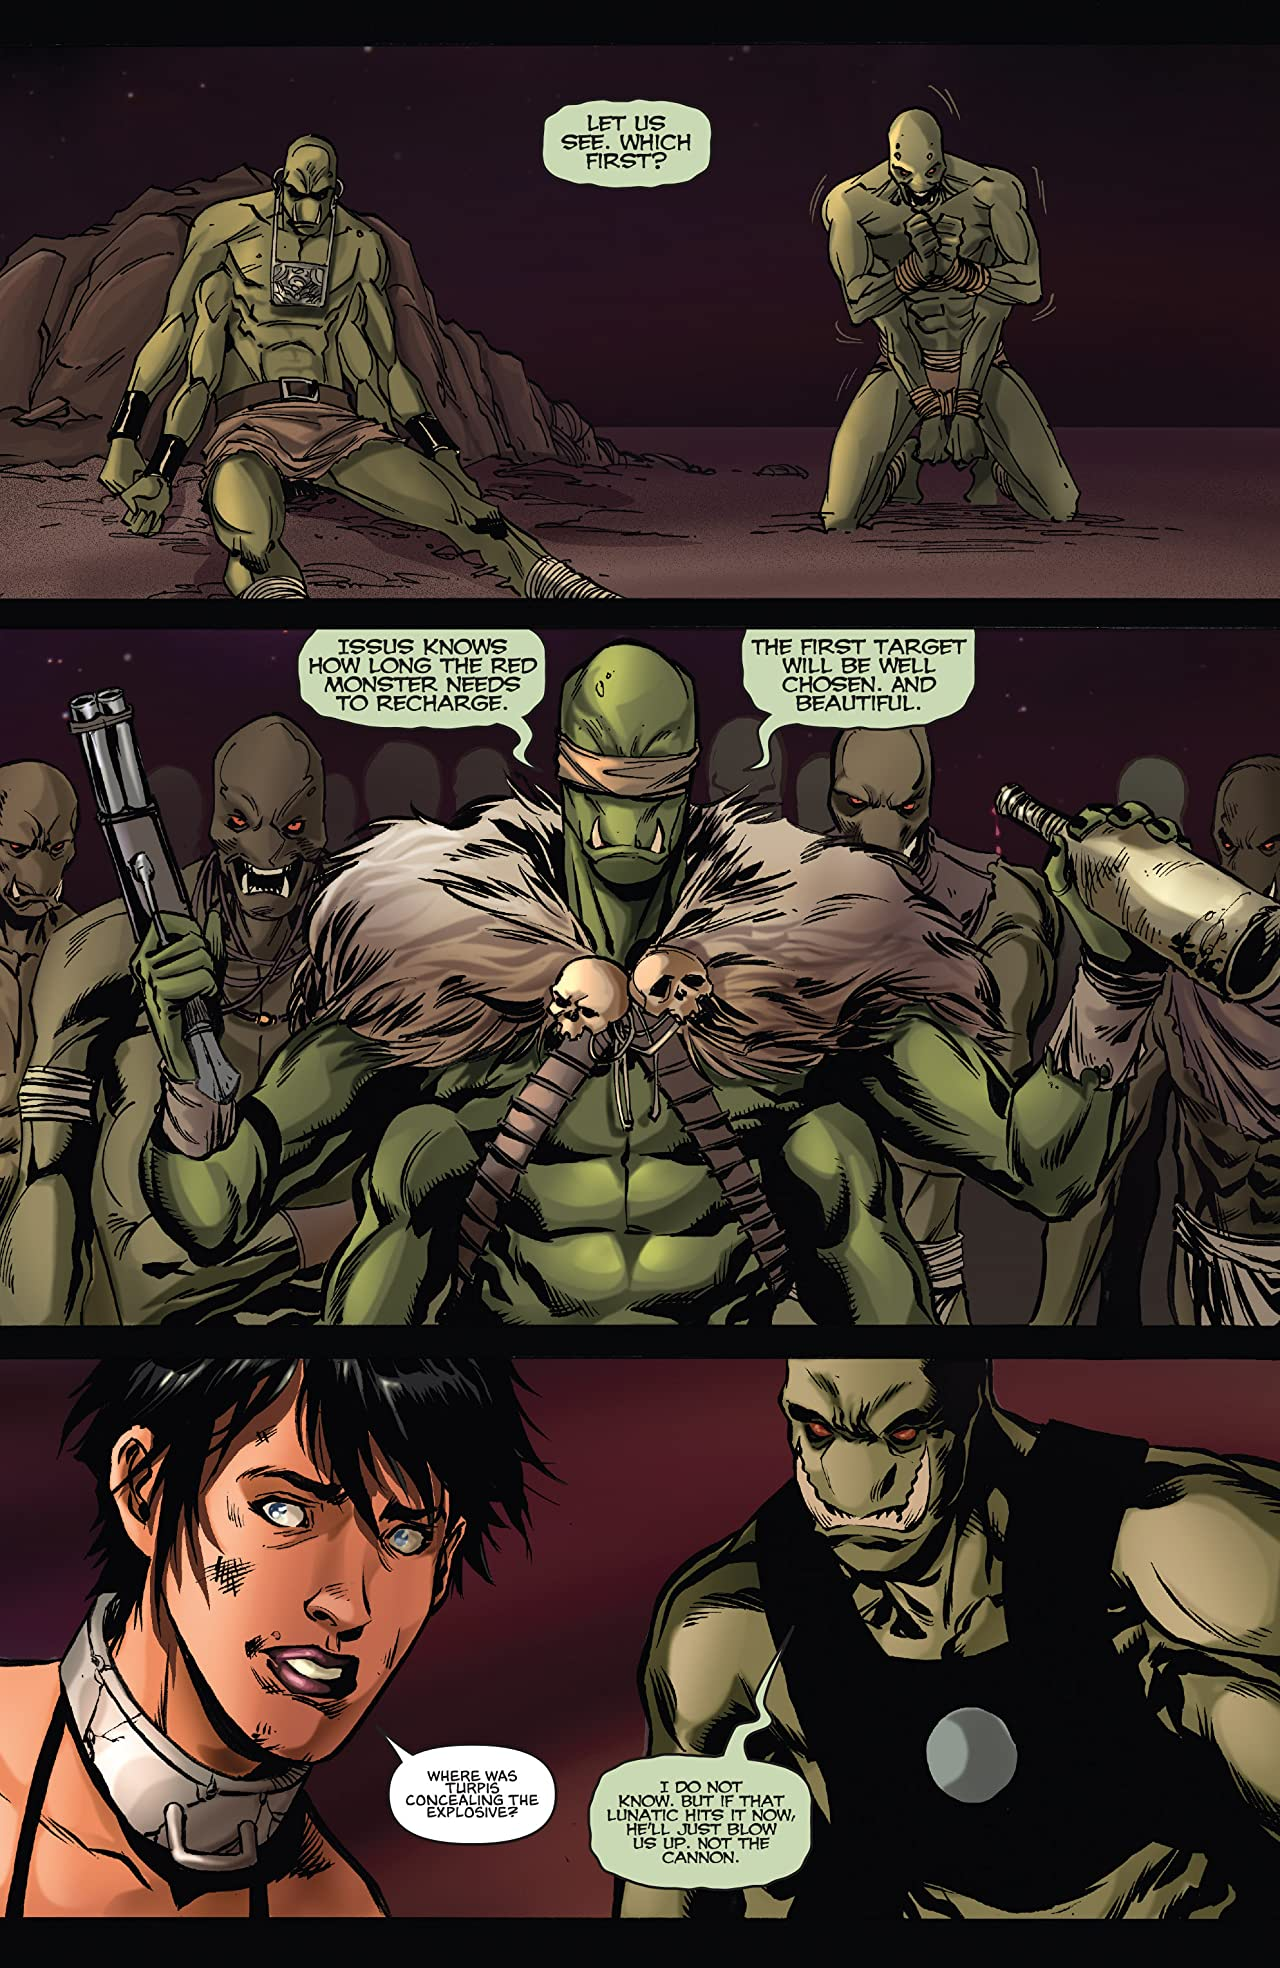 Dejah Thoris and the Green Men of Mars #12 (of 12)